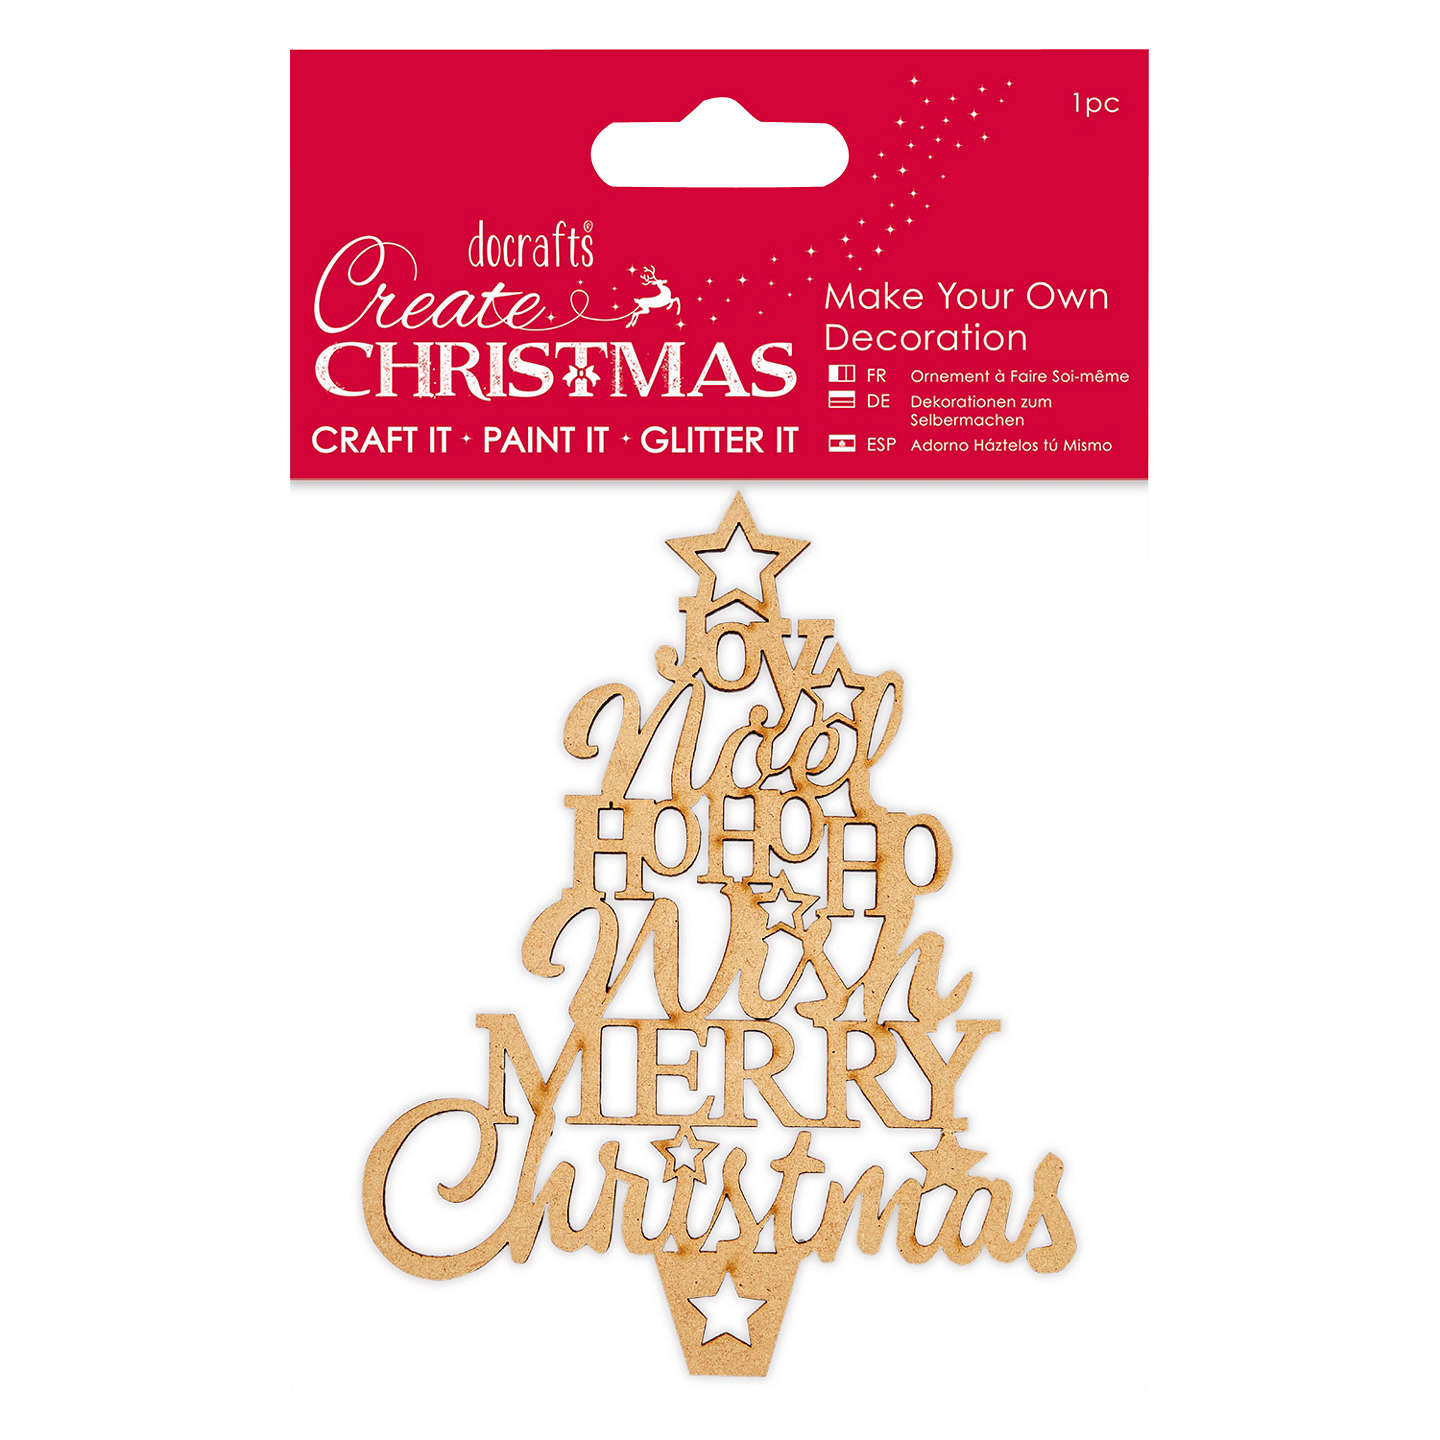 Docrafts Make Your Own Star Christmas Tree Kit, Brown at John Lewis